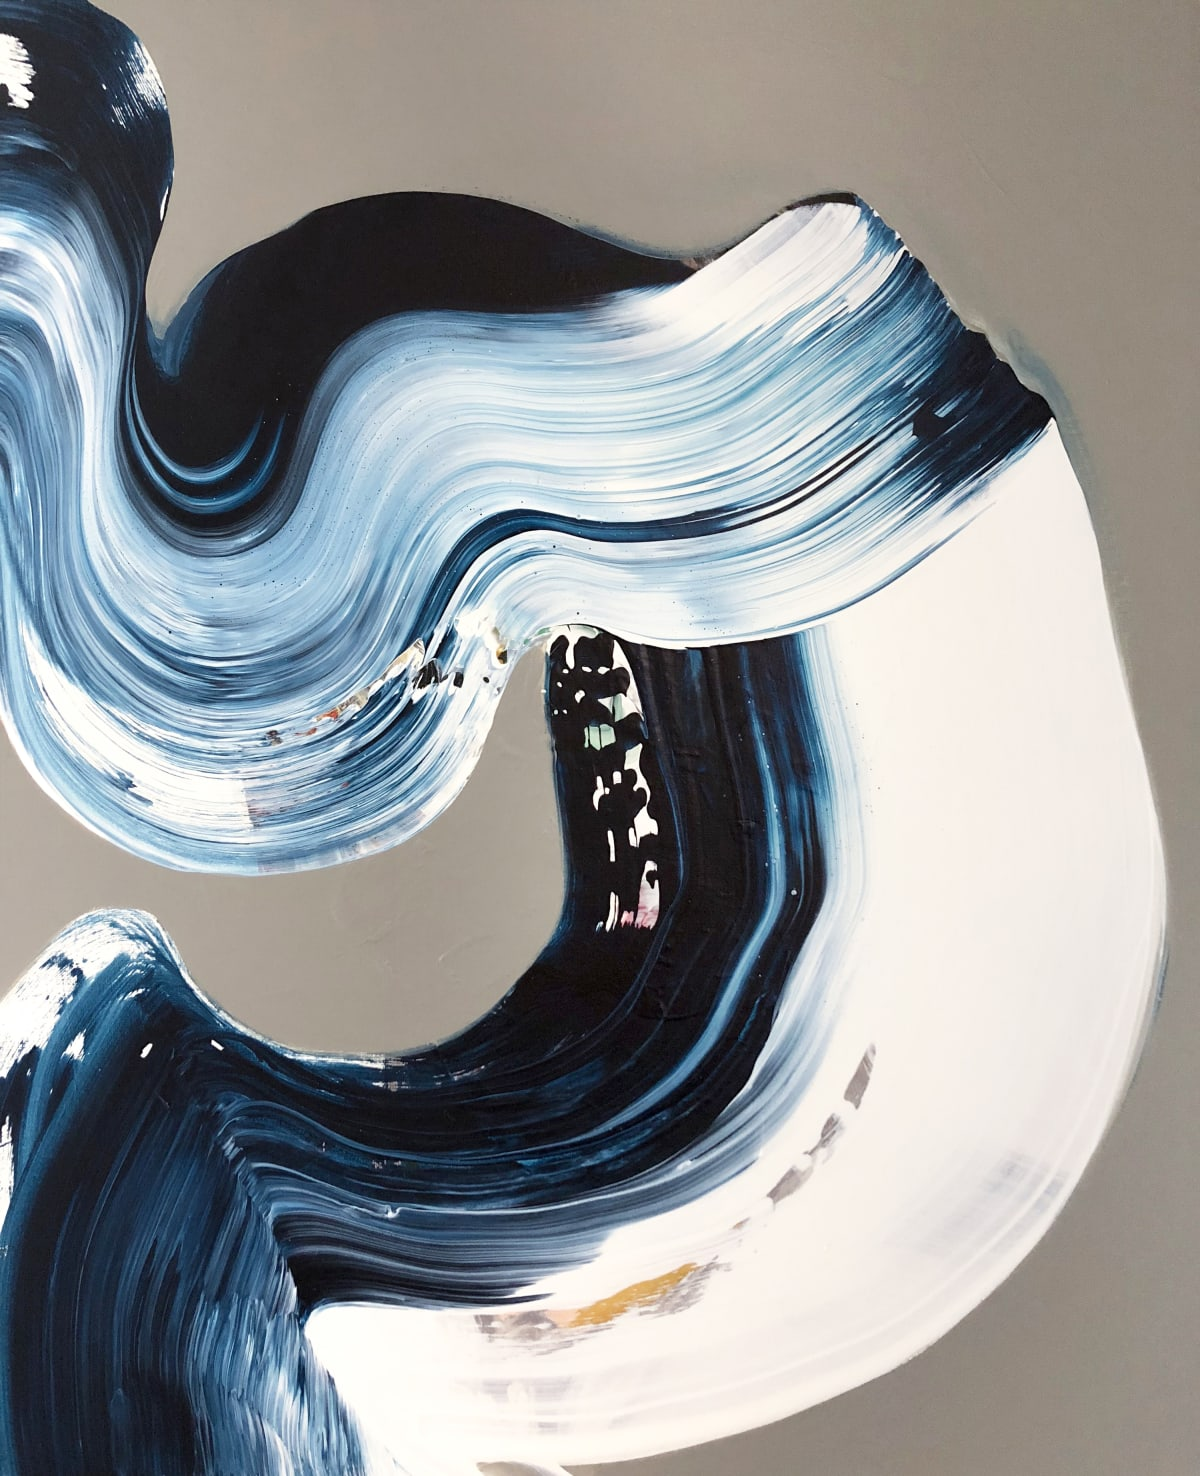 Norris Yim, Fight with Flow, 2019